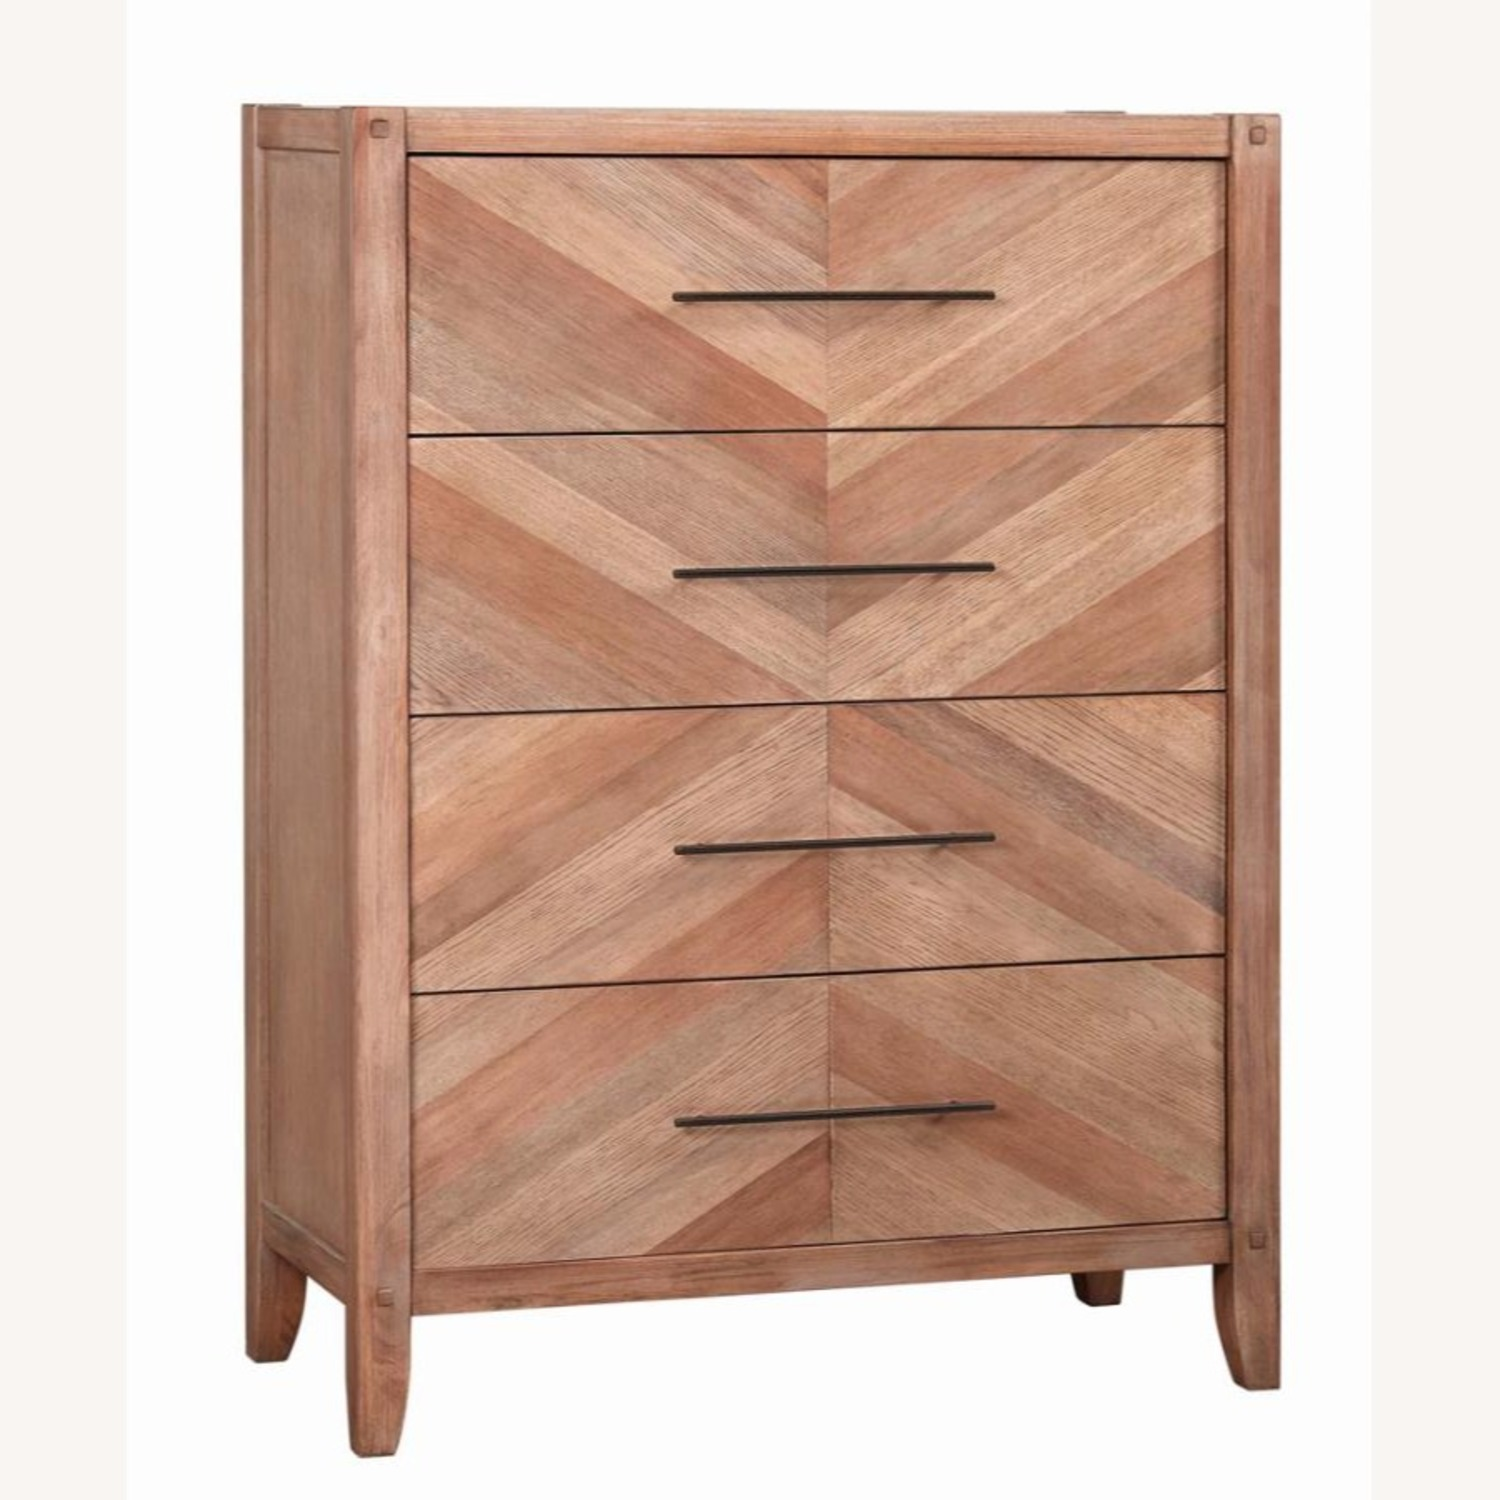 Chest in White Wash Natural Finish w/ Long Handles - image-0